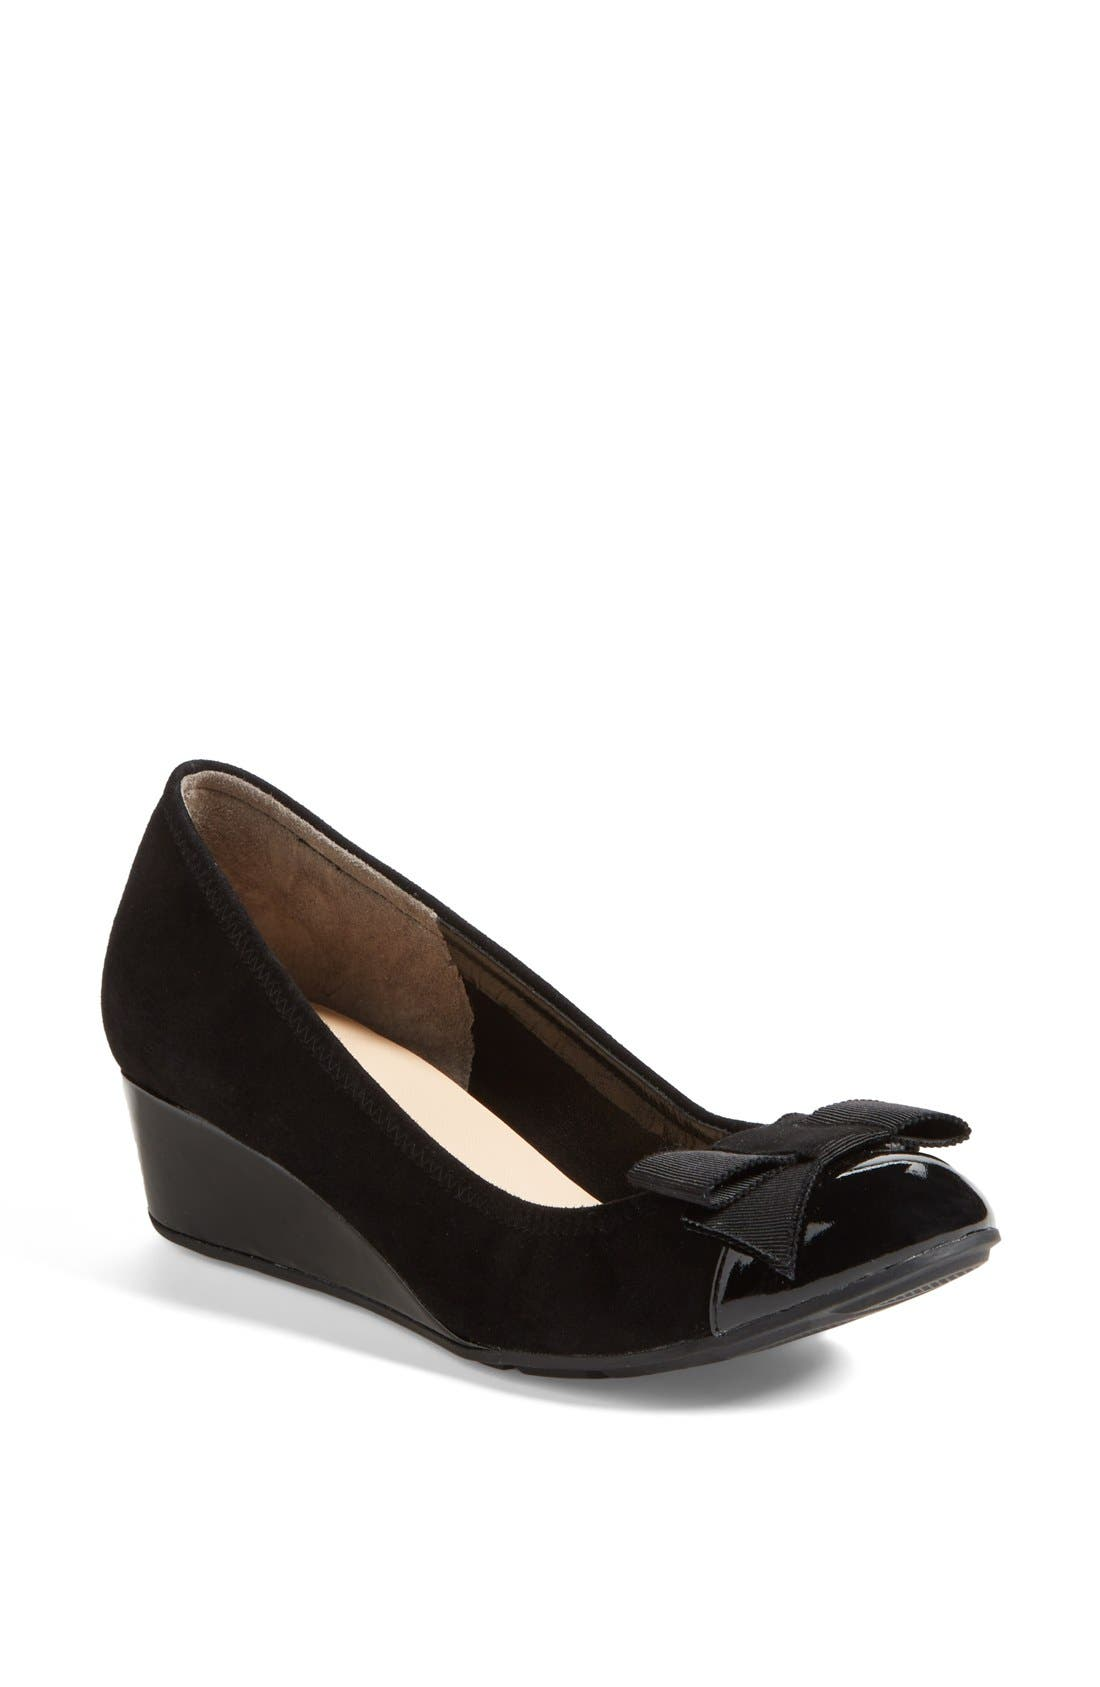 Main Image - Cole Haan 'Air Tali' Wedge Pump (Women)